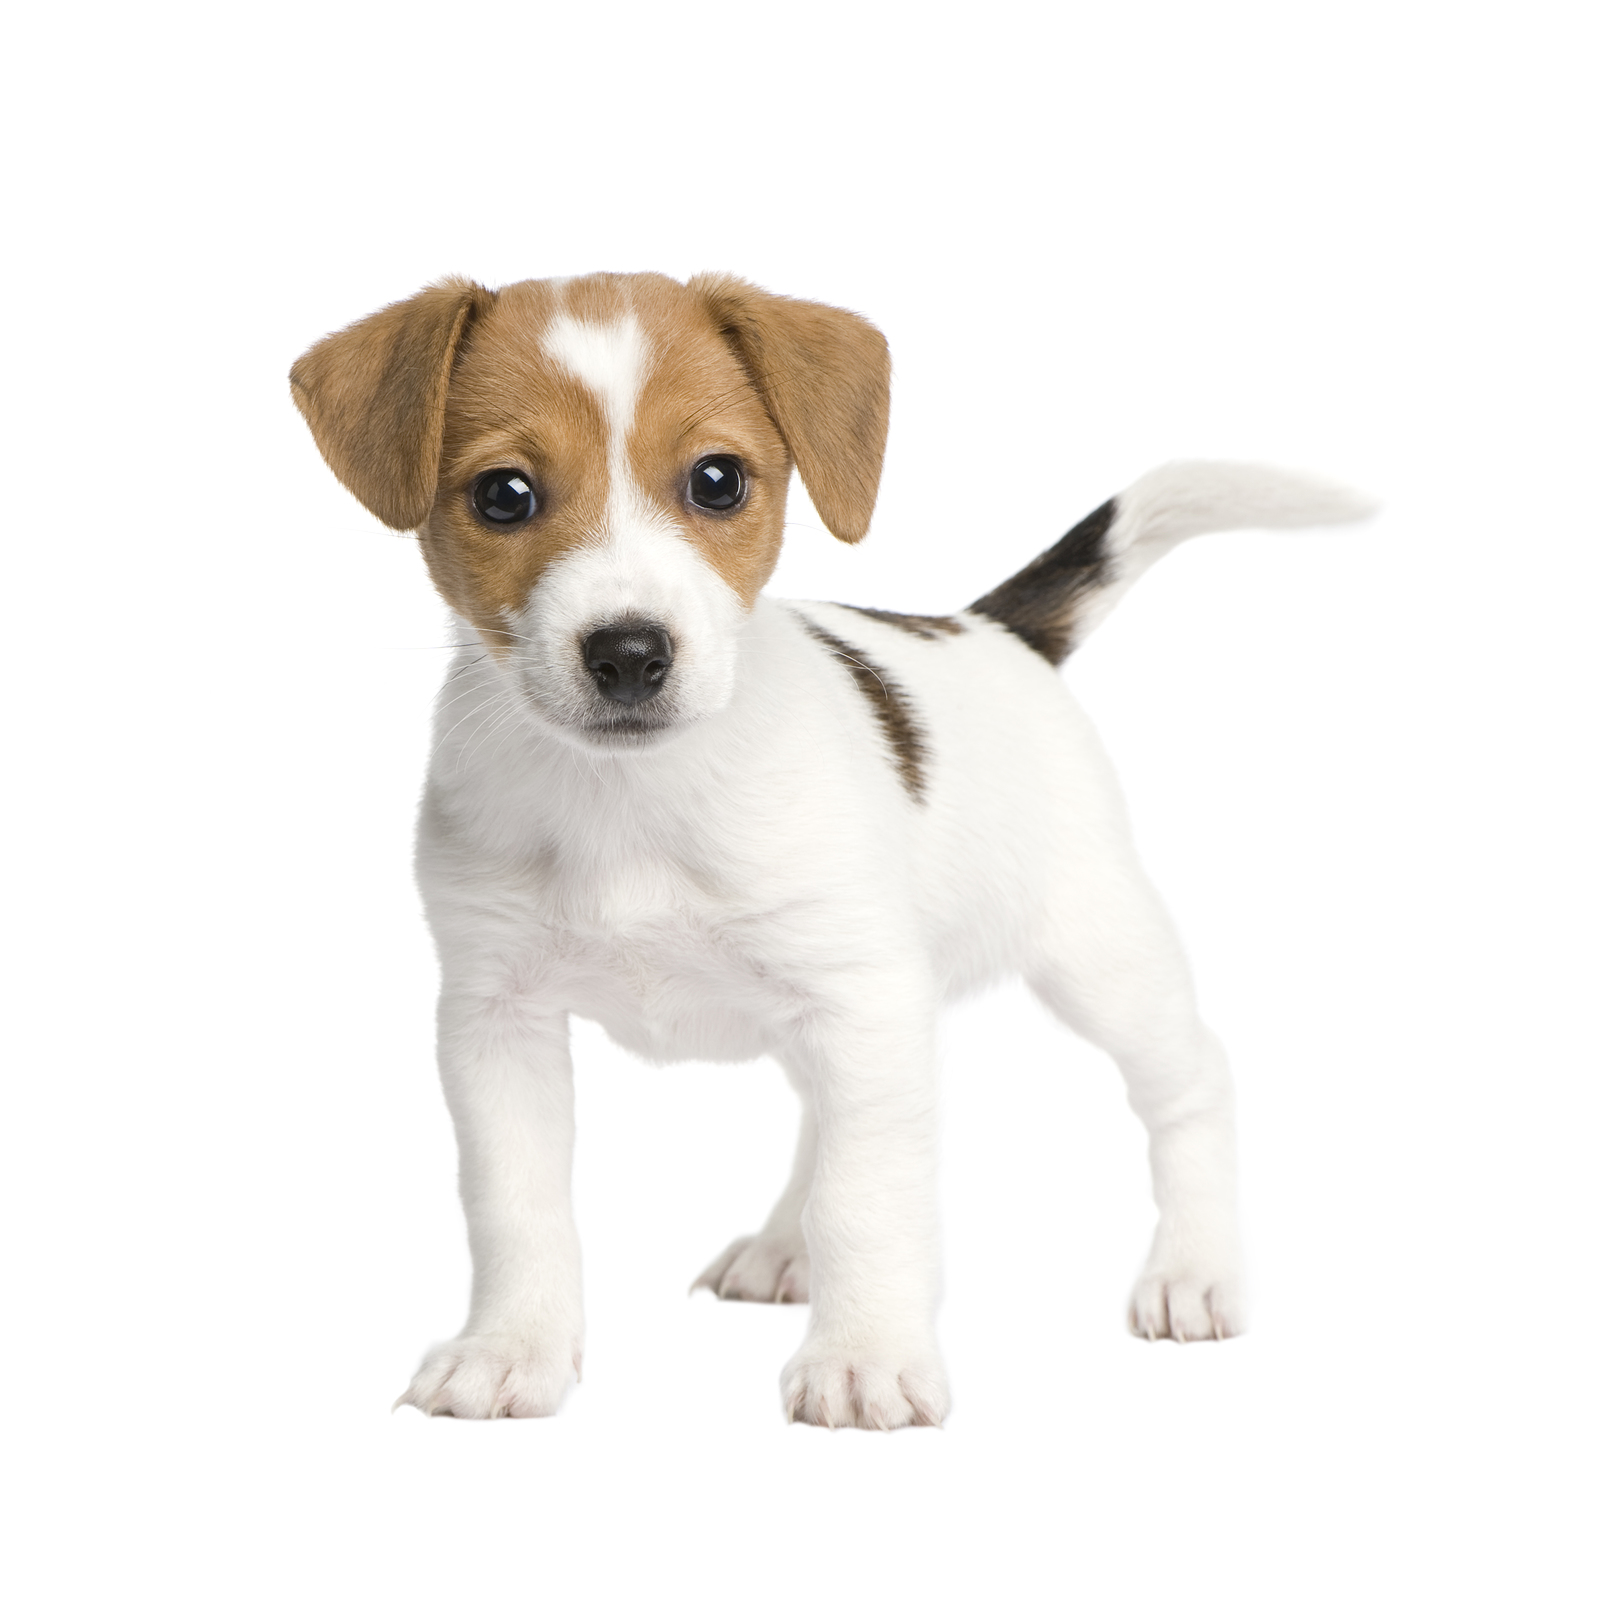 White Jack Russell puppy standing on its fours.